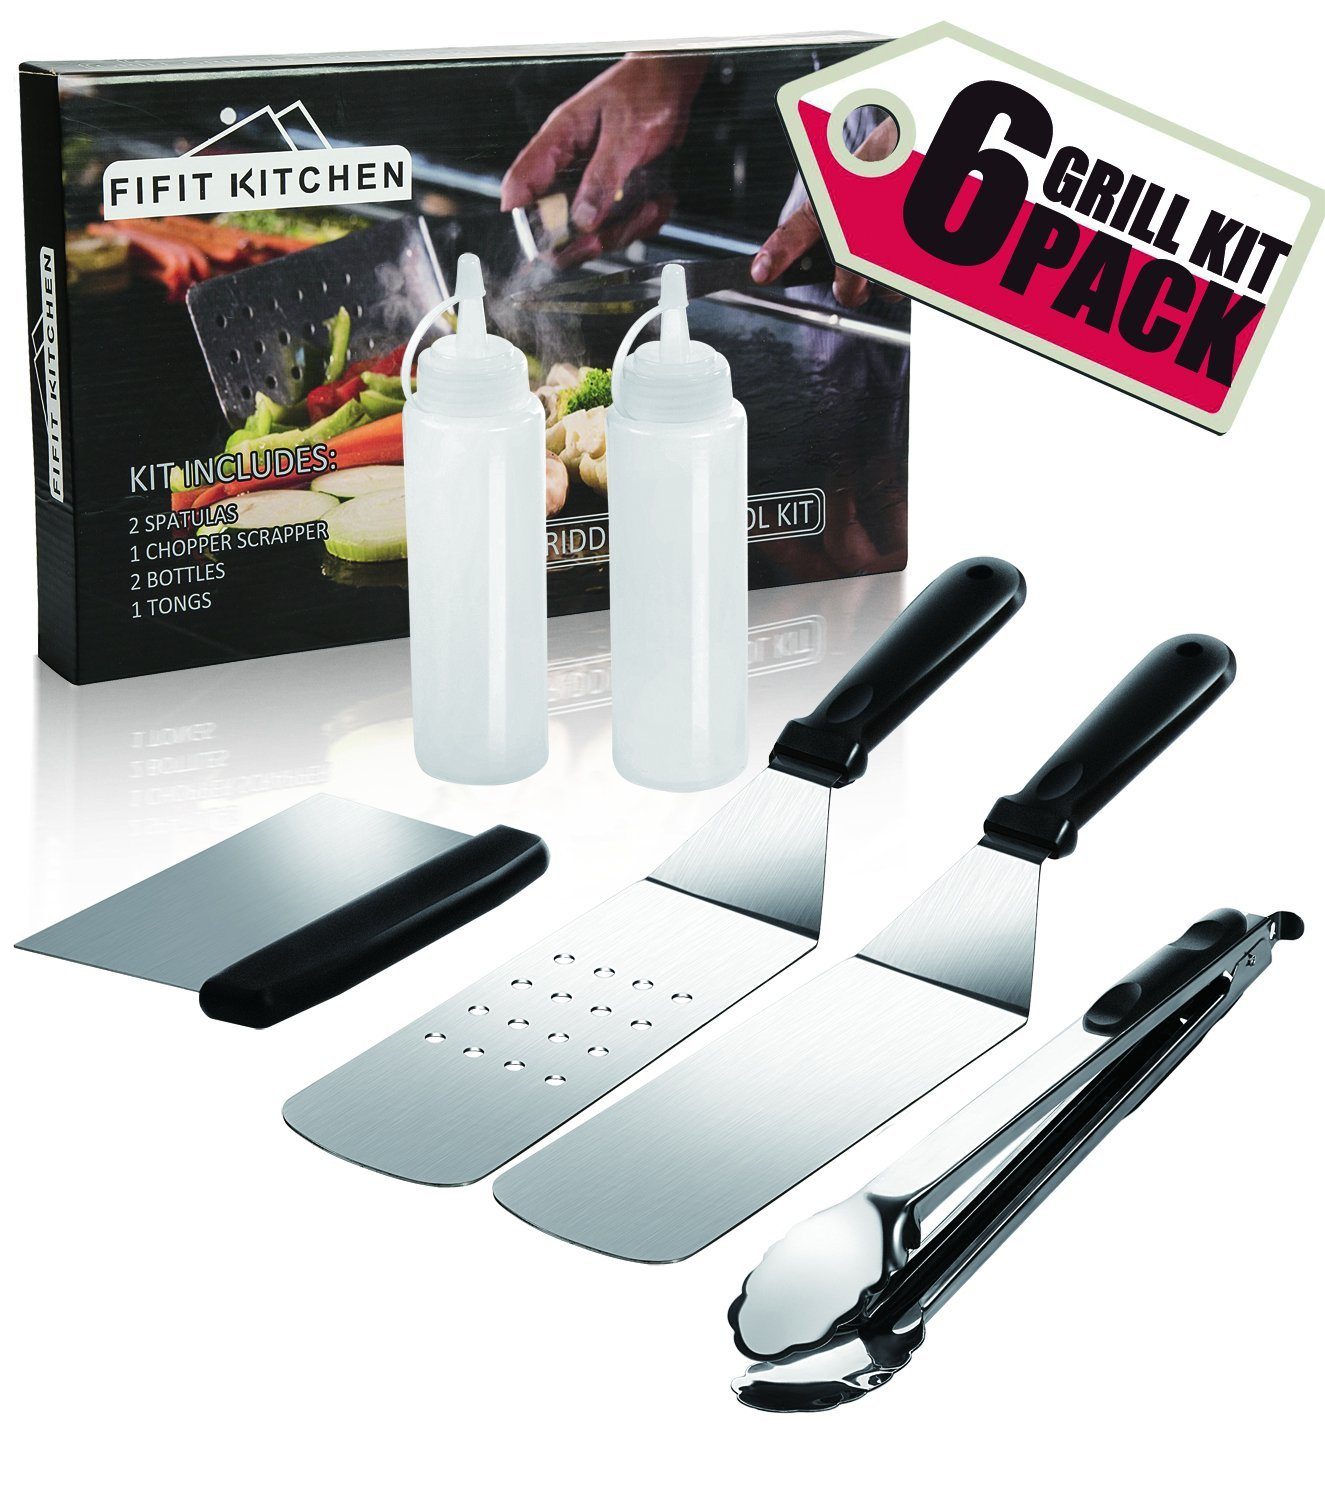 Grill Griddle Accessories BBQ Tool Kit-6 Piece Stainless Steel Grilling Utensils Set-2 Spatulas,1 Tongs,1 Chopper Scrapper,2 Bottle-Fits for Flat Top Cooking,Camping,Teppanyaki Grills and Griddle